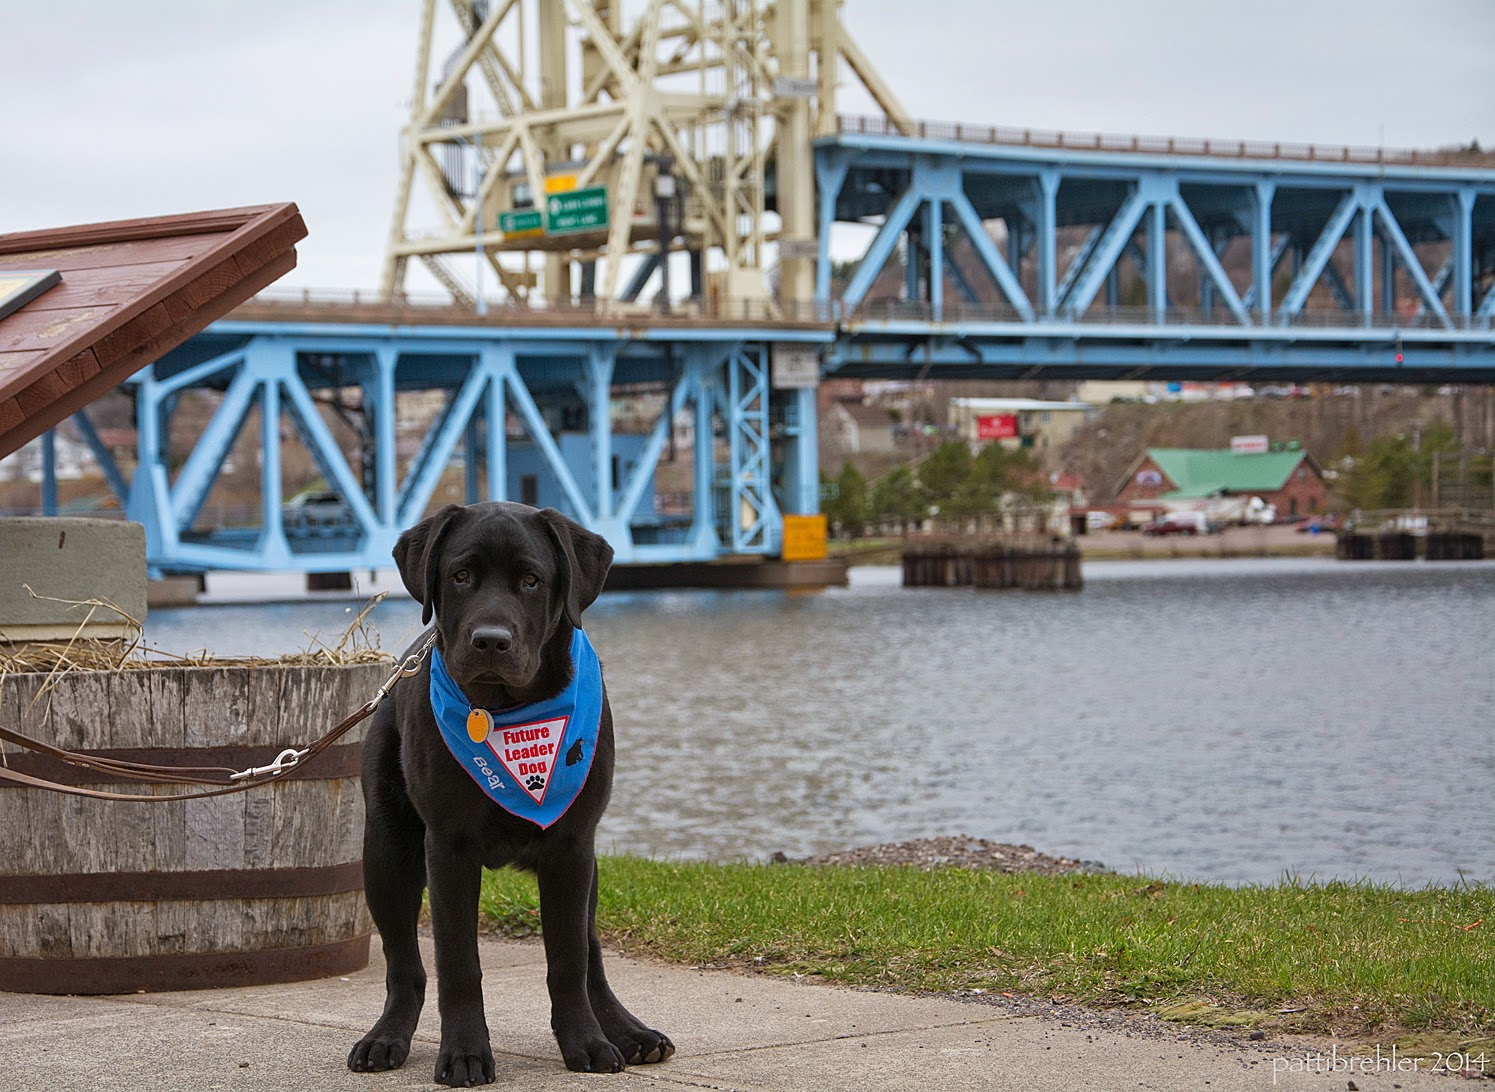 A black lab puppy wearing the blue Future Leader Dog bandana is standing and facing the camera. His leash is attached to something out of view to the left. In the background is a metal bridge over some water.